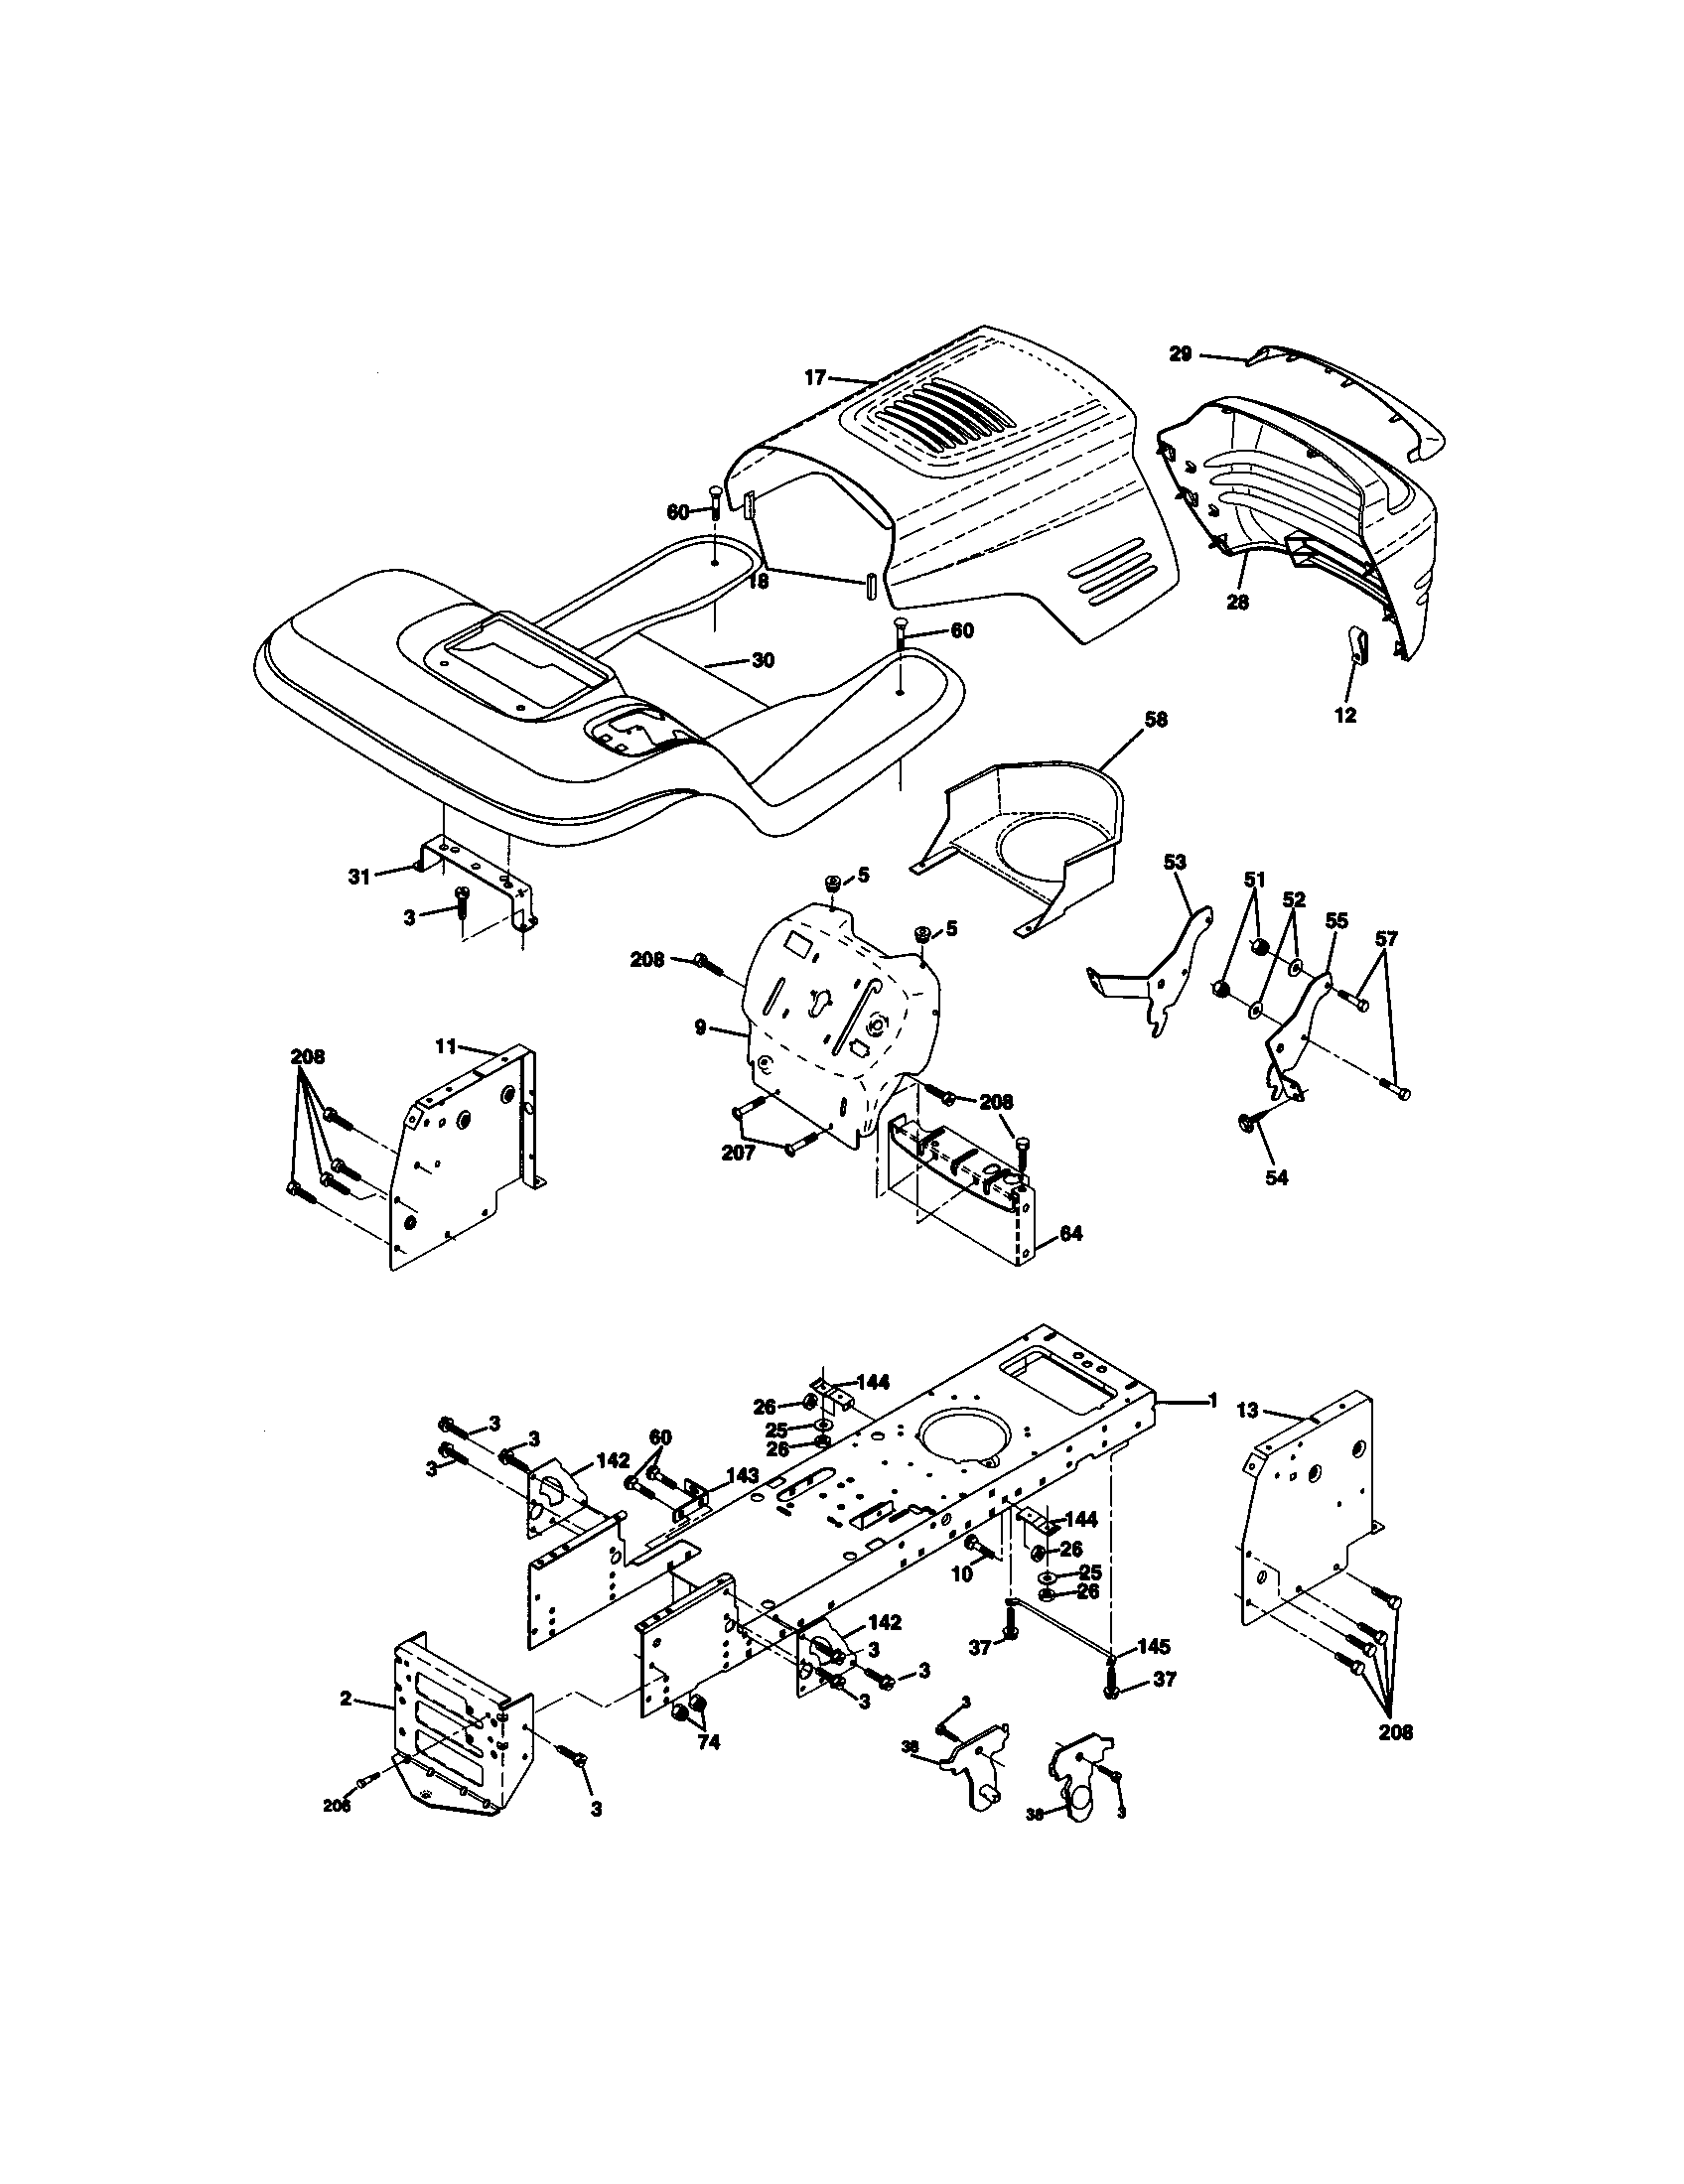 hight resolution of craftsman 917271140 chassis diagram